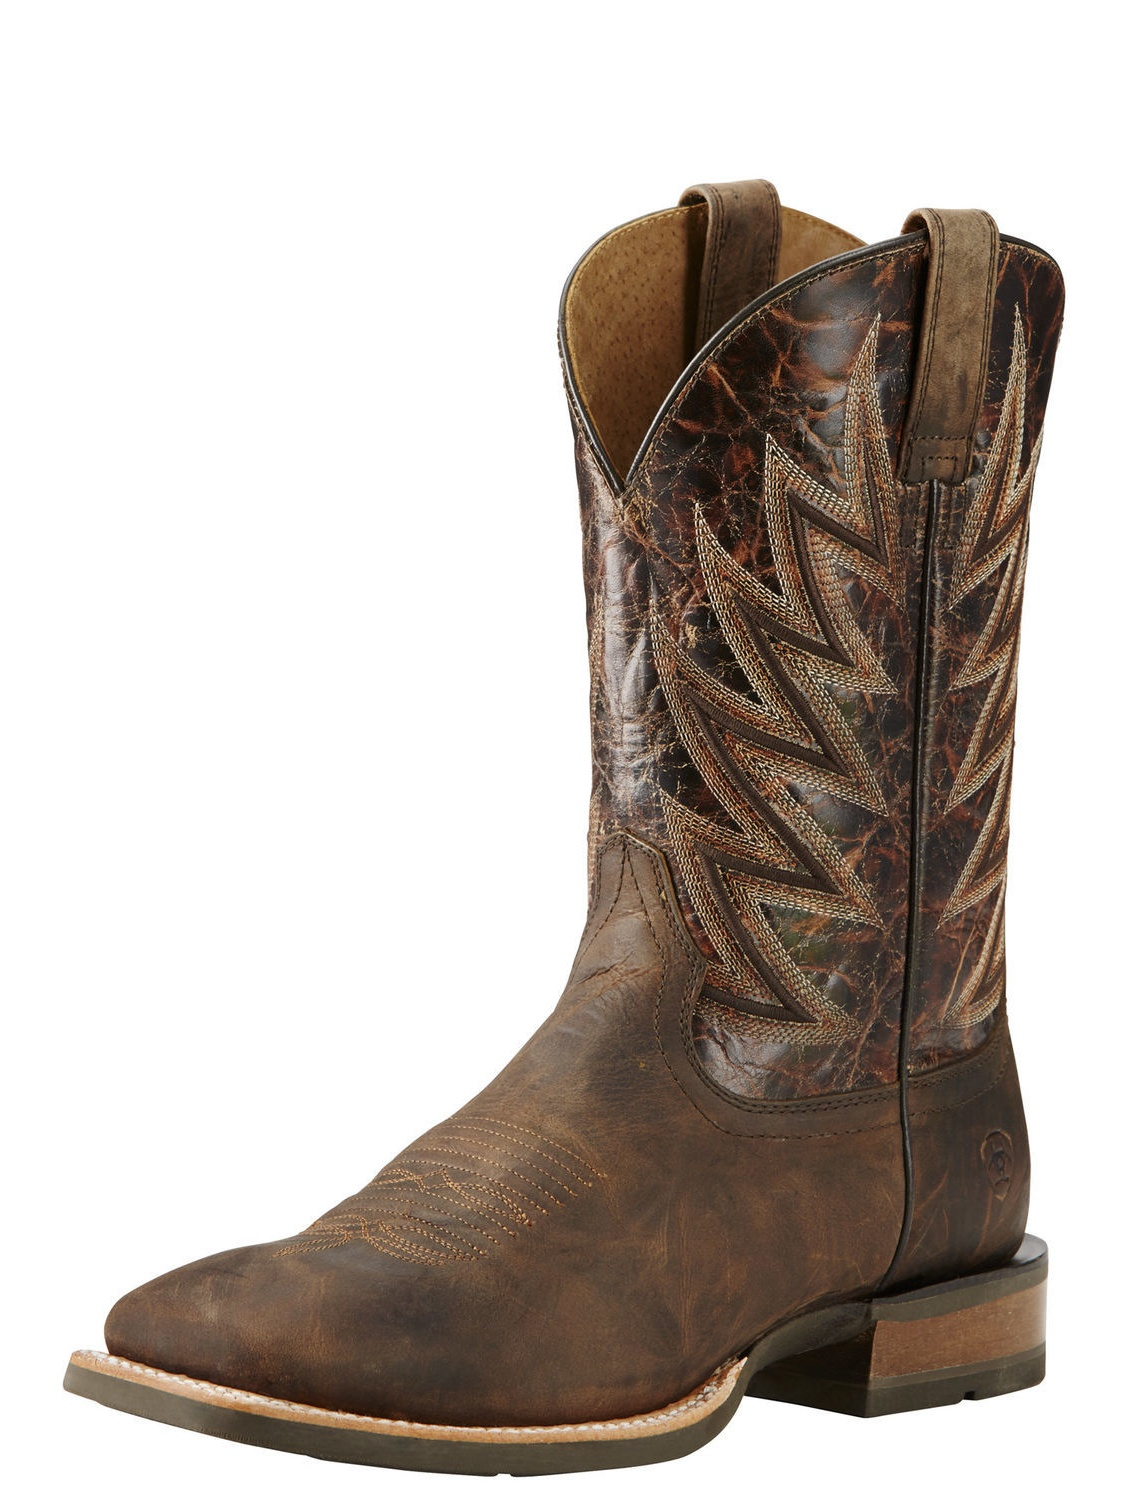 Ariat Challenger Men Square Toe Leather Brown Western Boot by Ariat